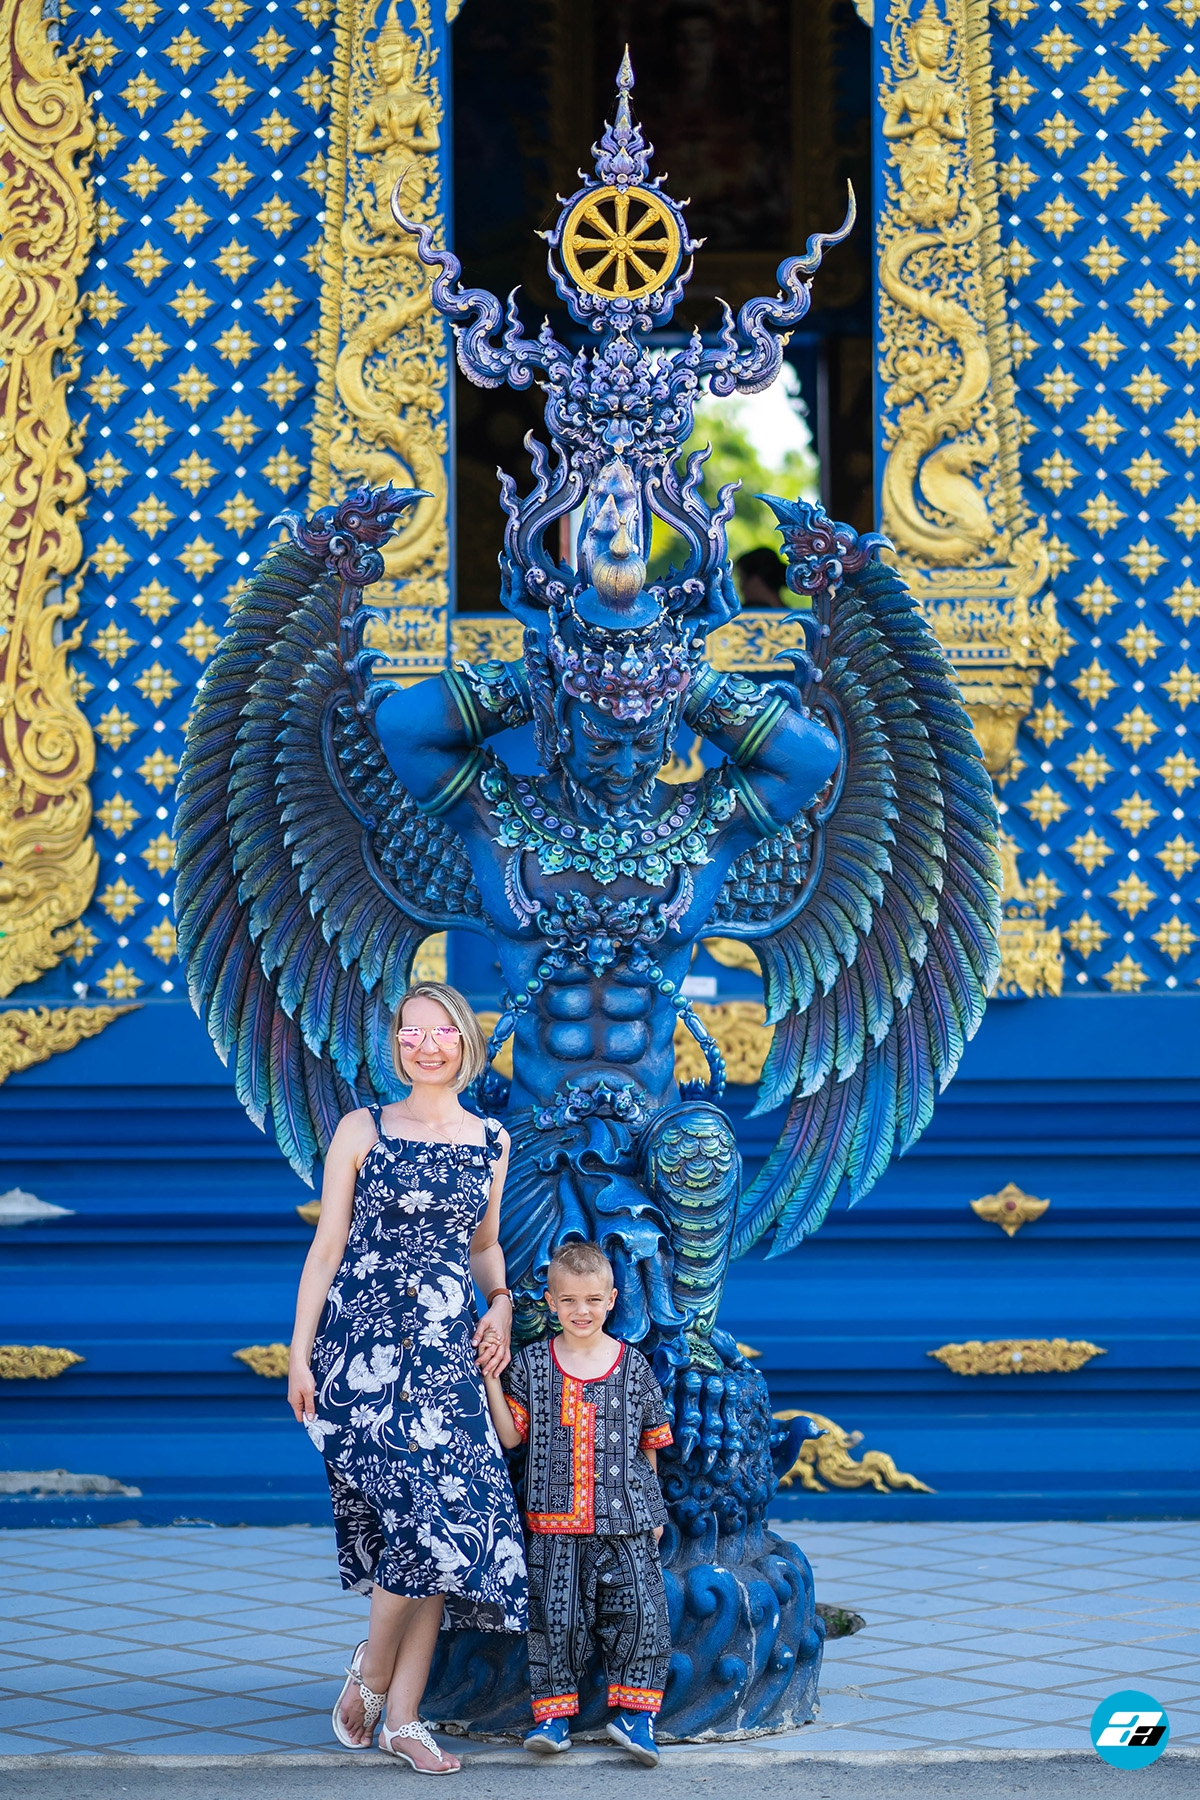 Thailand Blue Temple